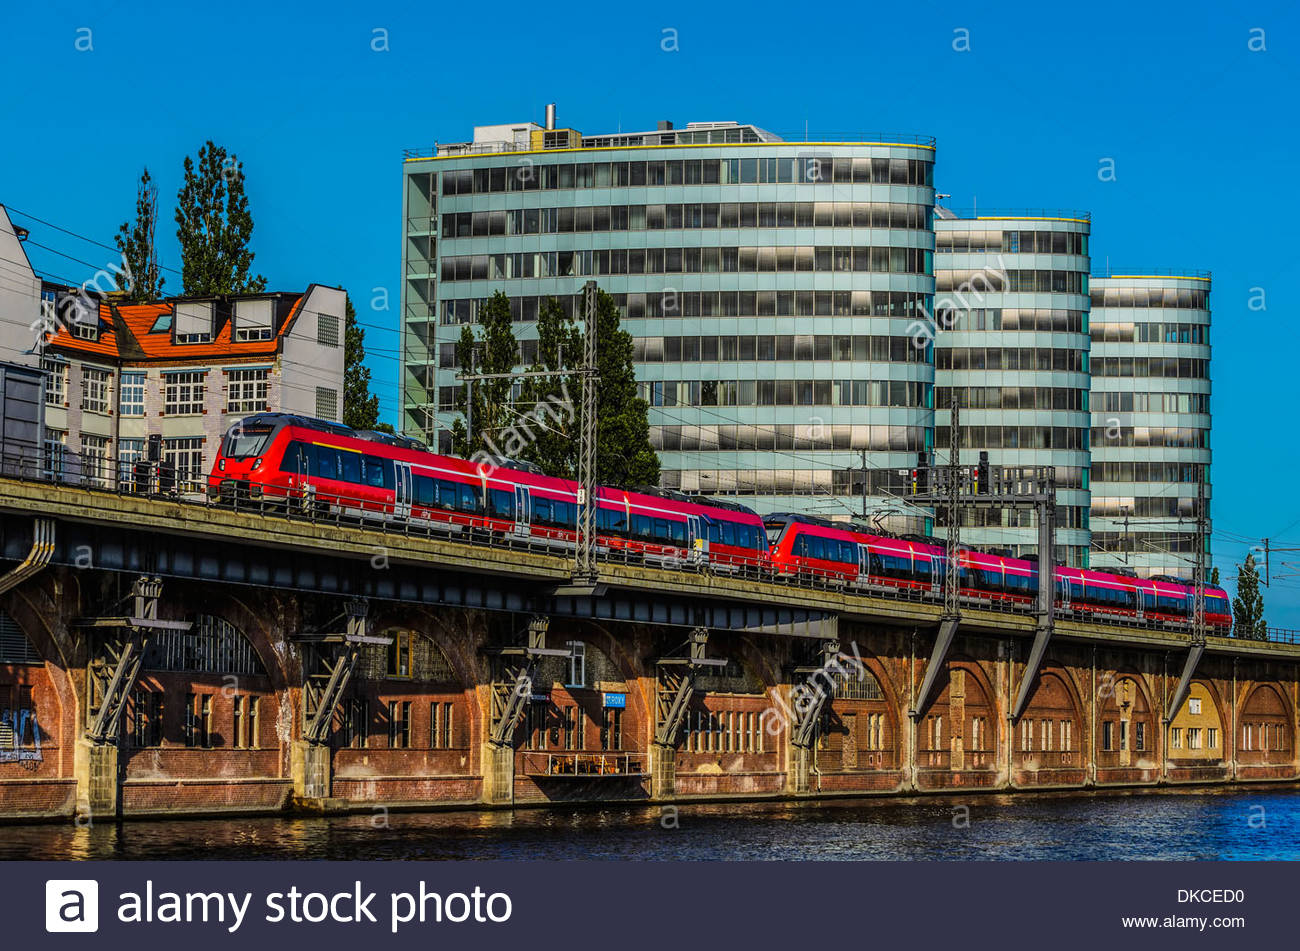 Commuter train along Spree River with office buildings, Berlin, Germany - Stock Image